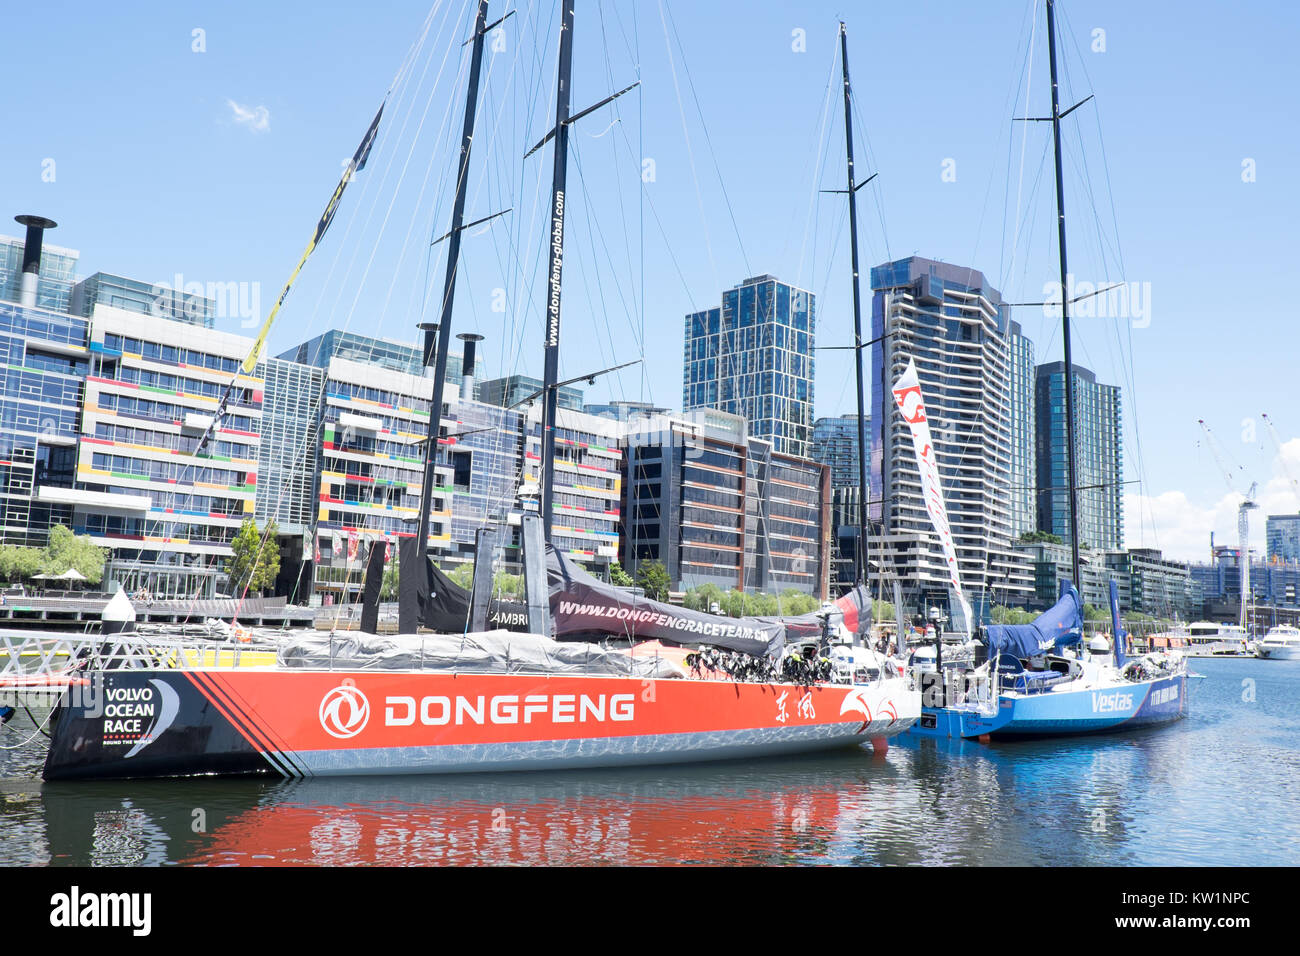 Dongfeng Yacht Docked in Docklands Melbourne, Volvo Ocean Race - Stock Image